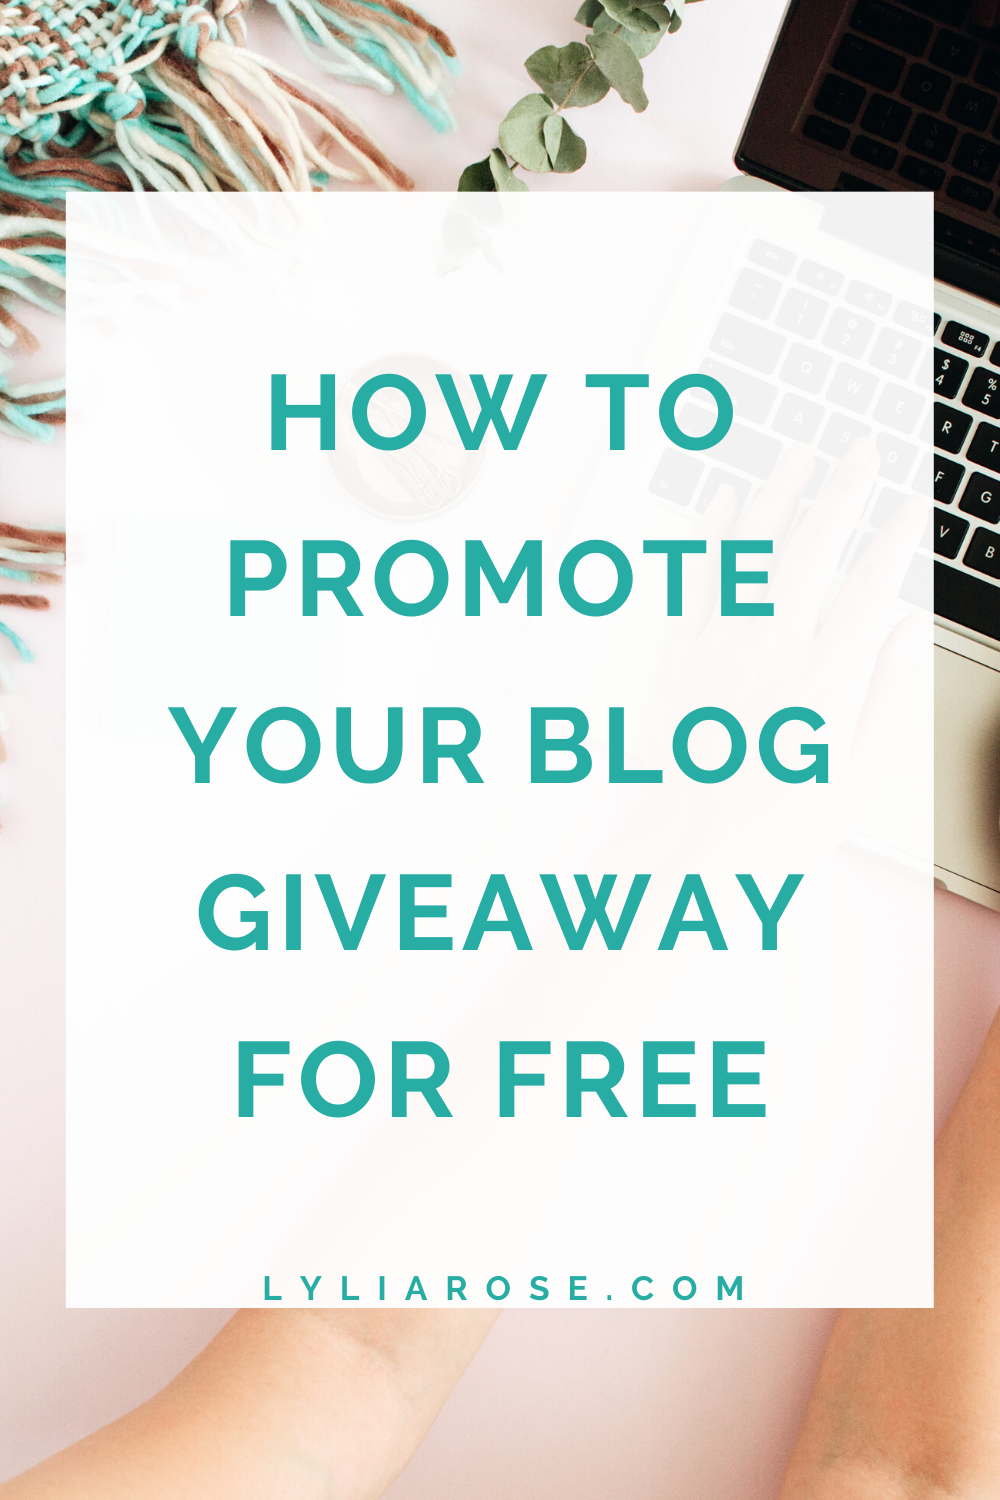 How to promote your blog giveaway for free